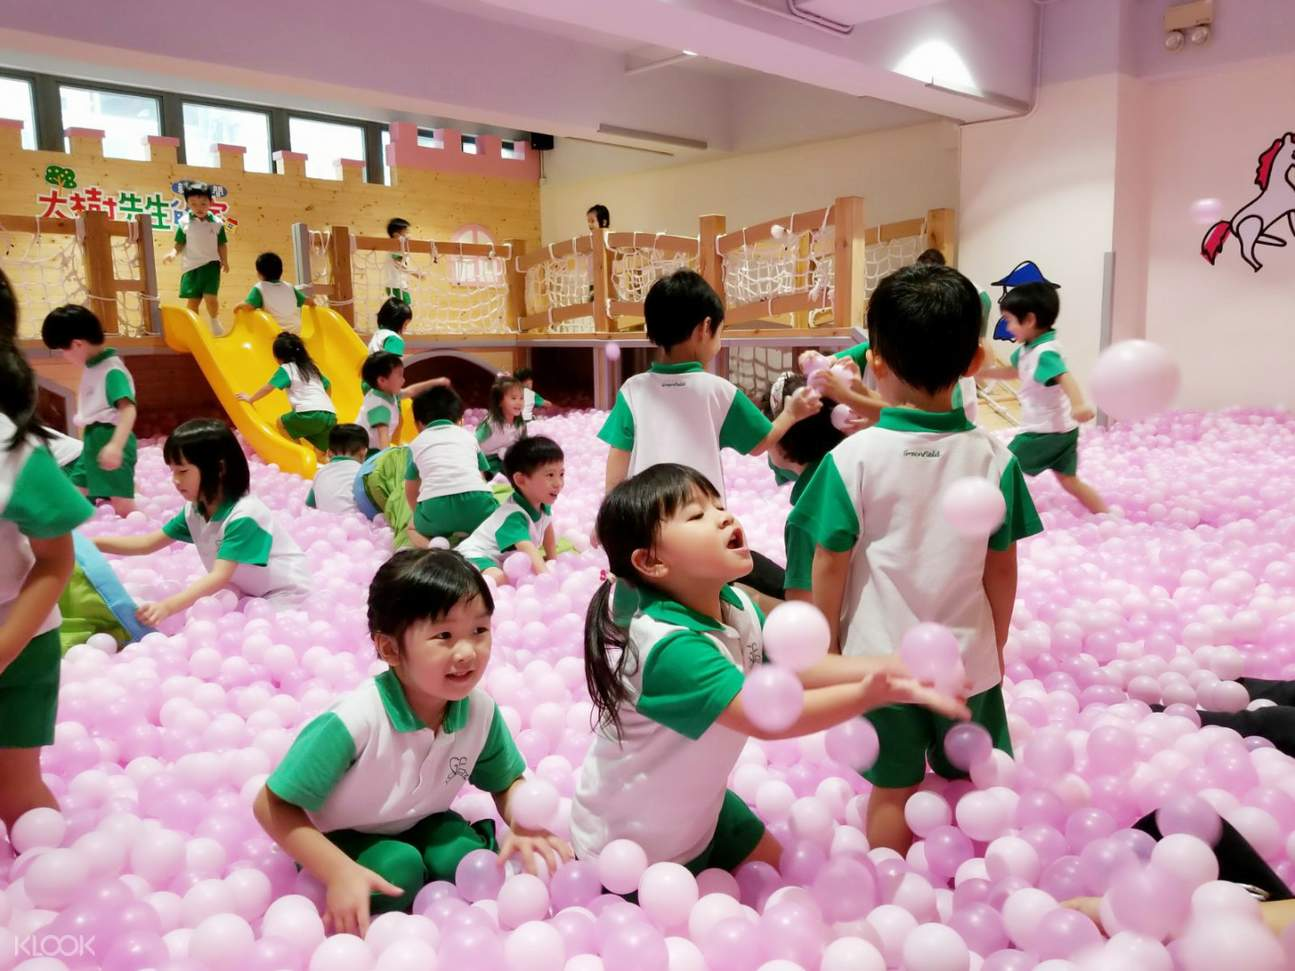 mr tree in lai chi kok ball pit